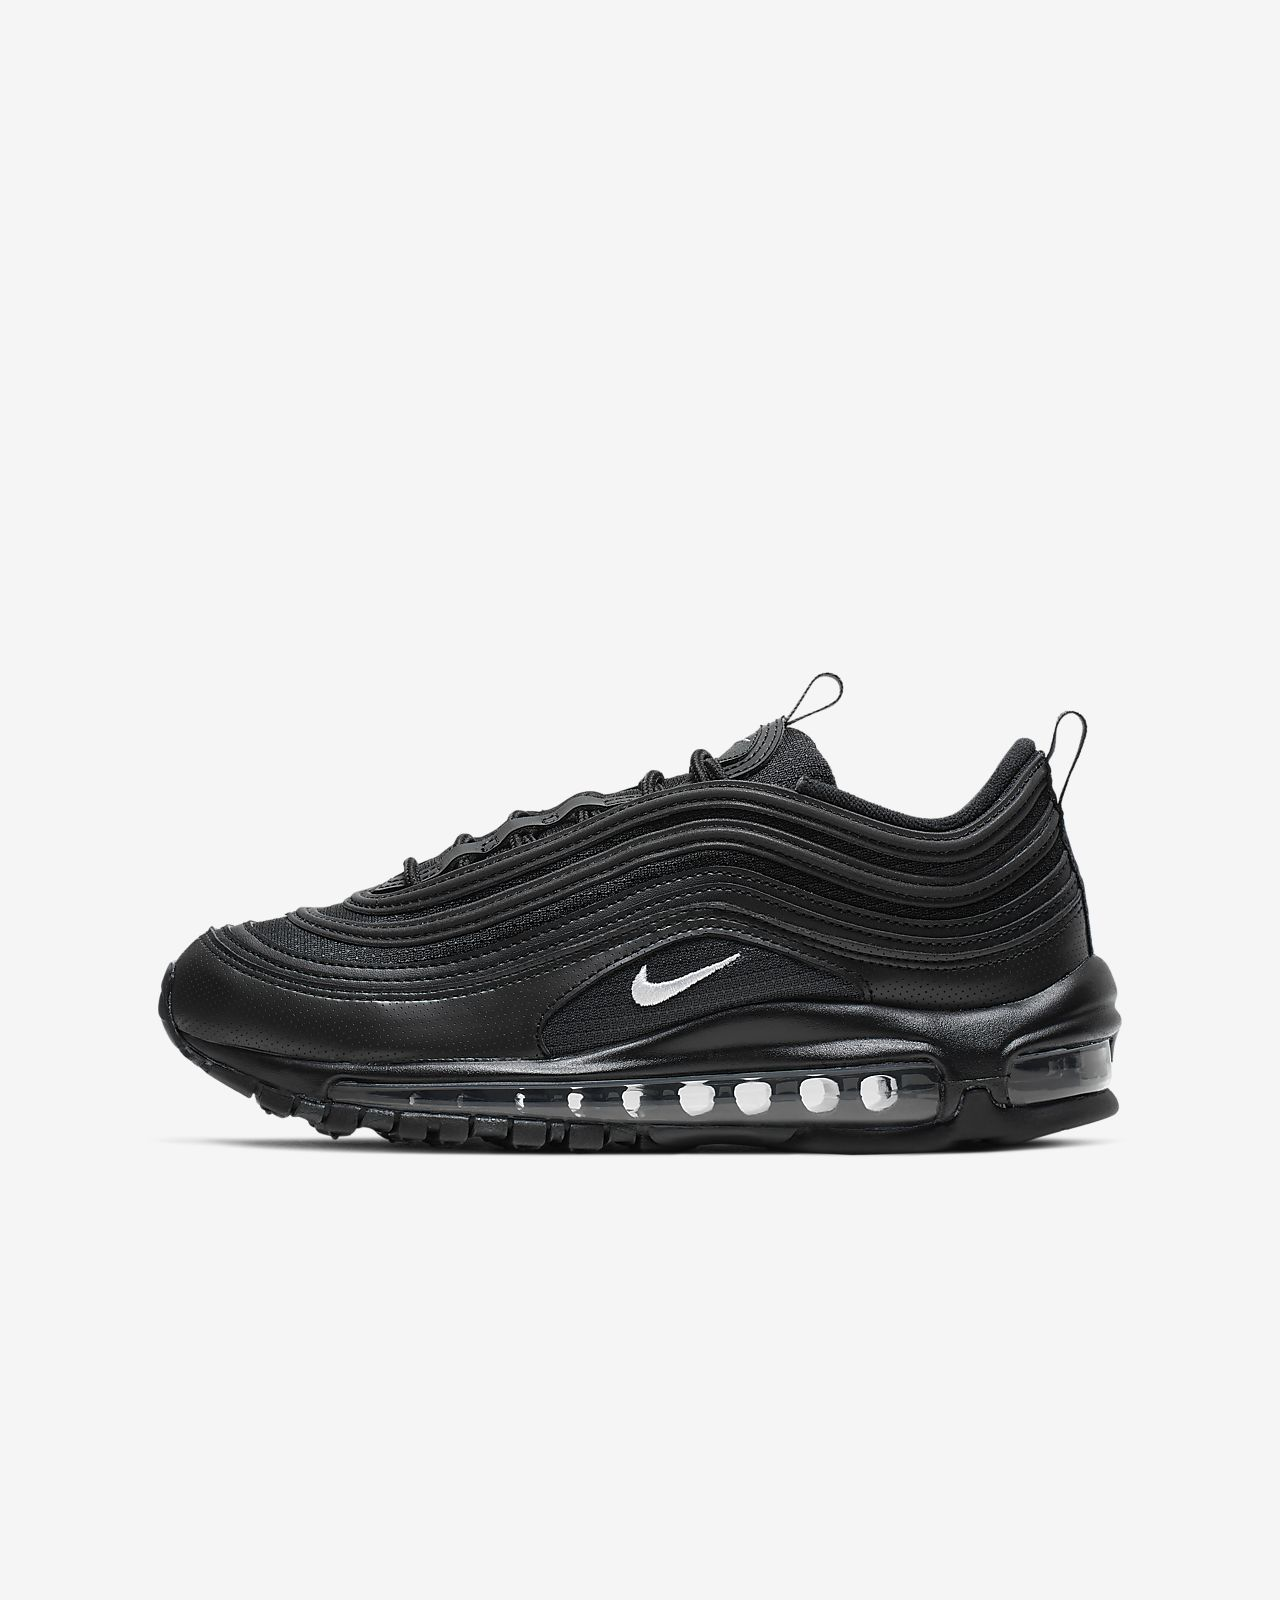 Big Discount UA Air Max 97 Black Sneakers with Black Logo en